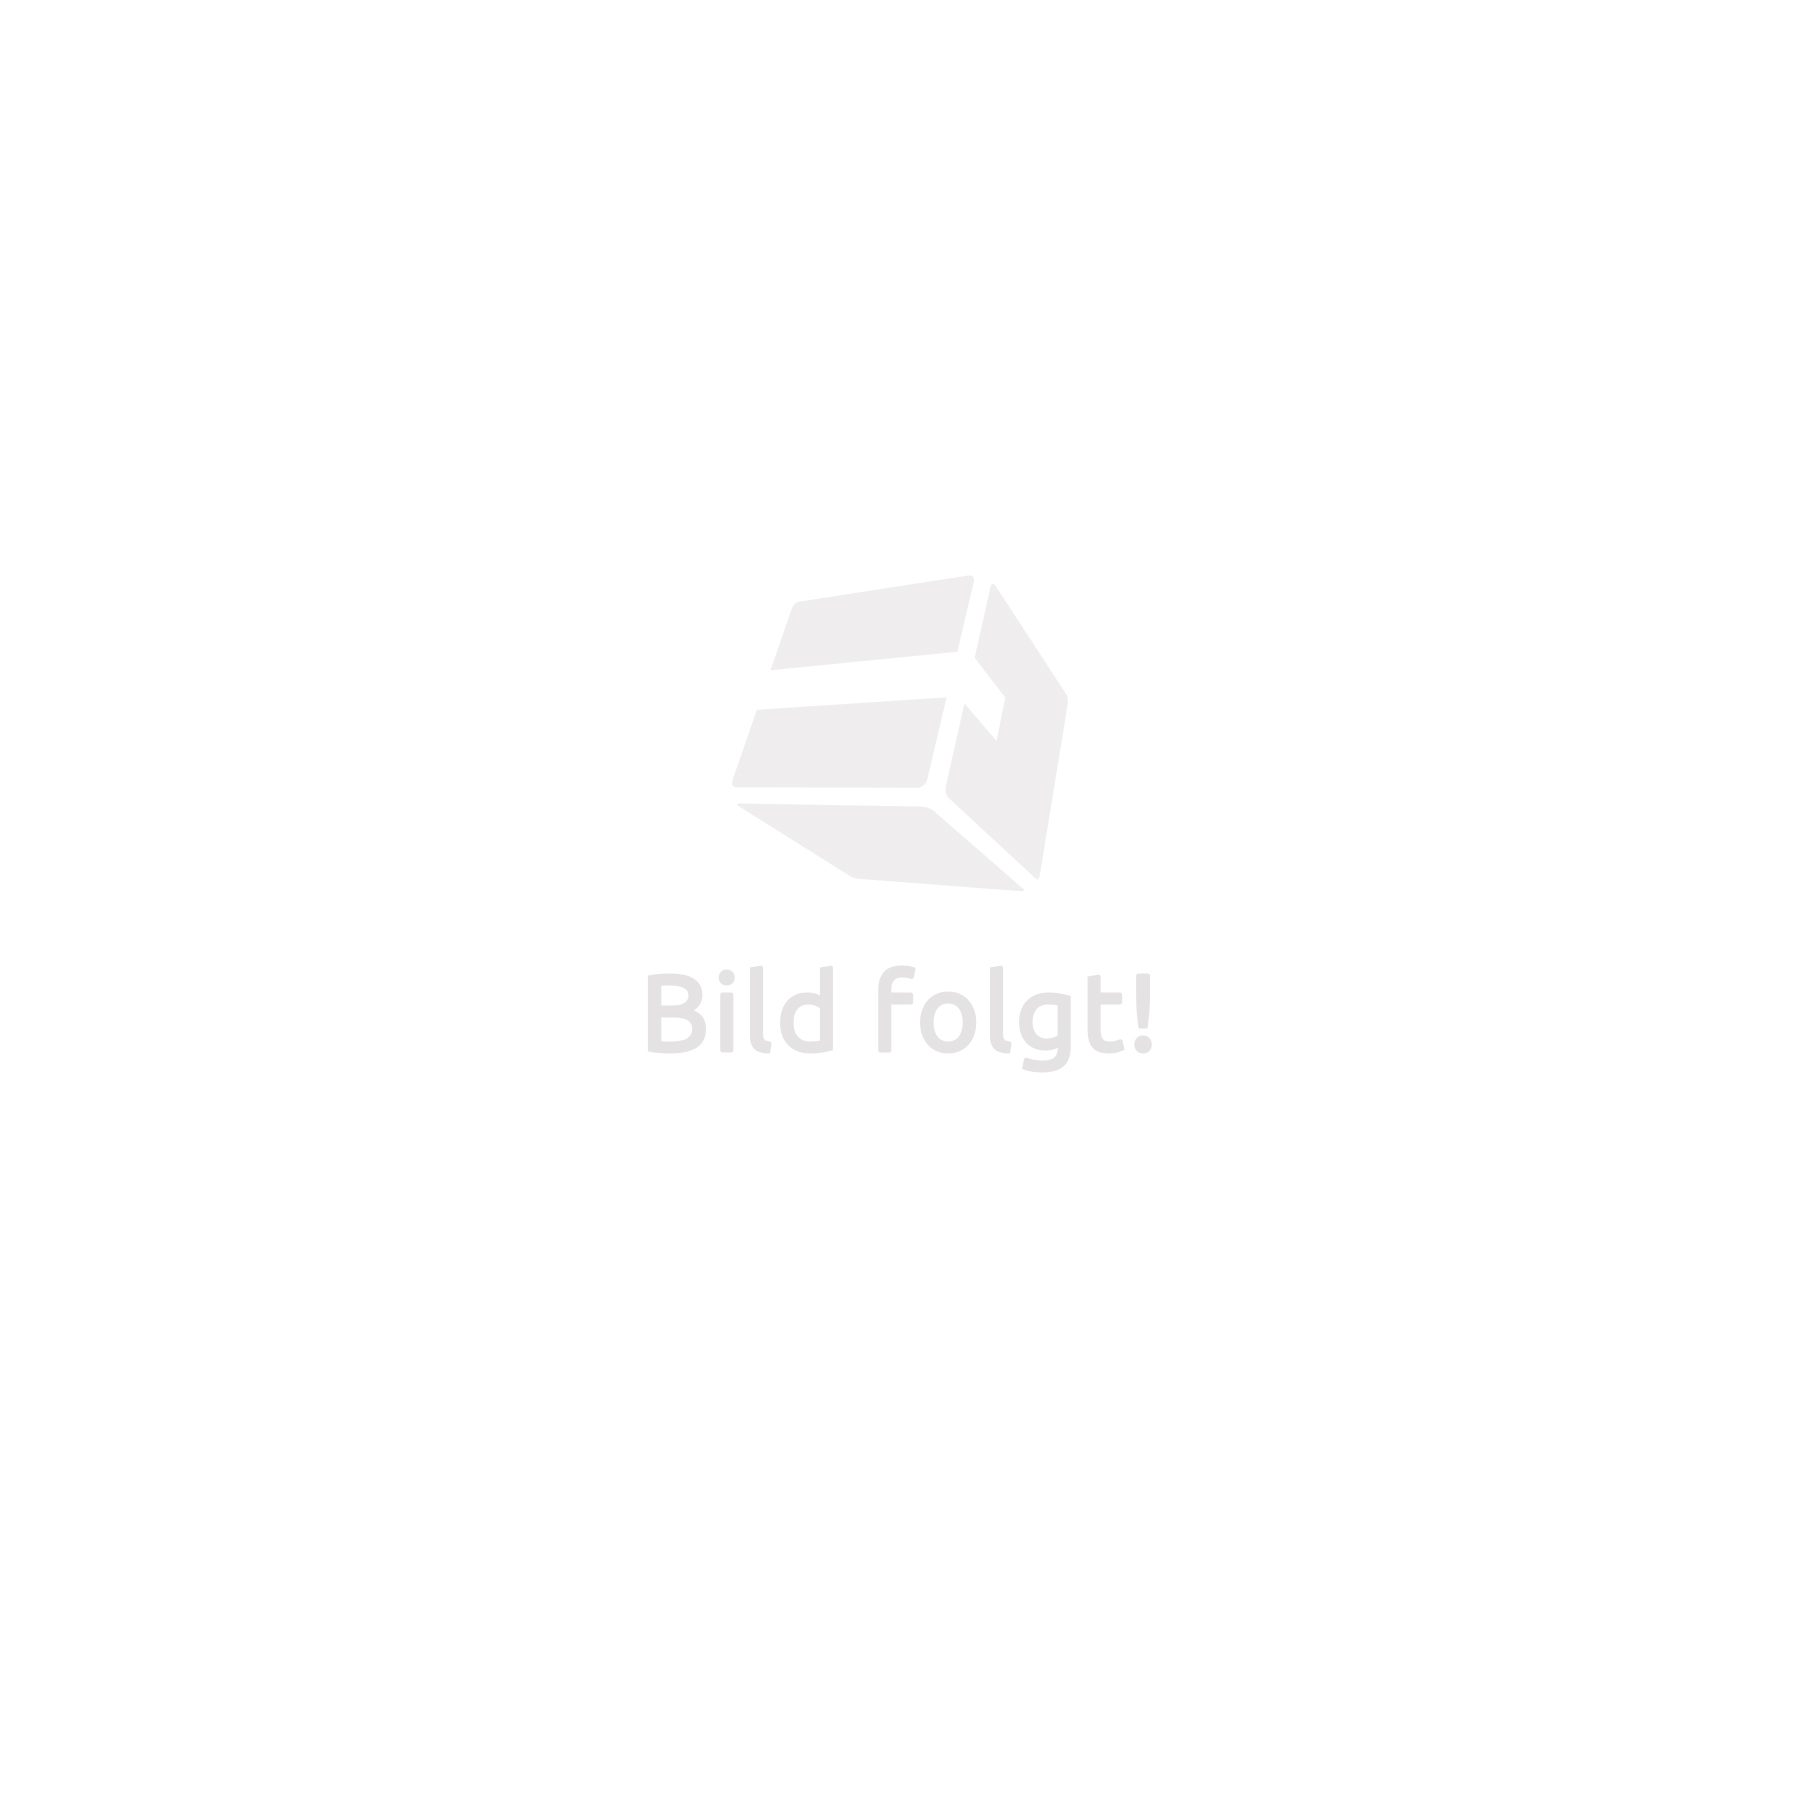 Massage table 2-zone Freddi 5 cm padding + bag white